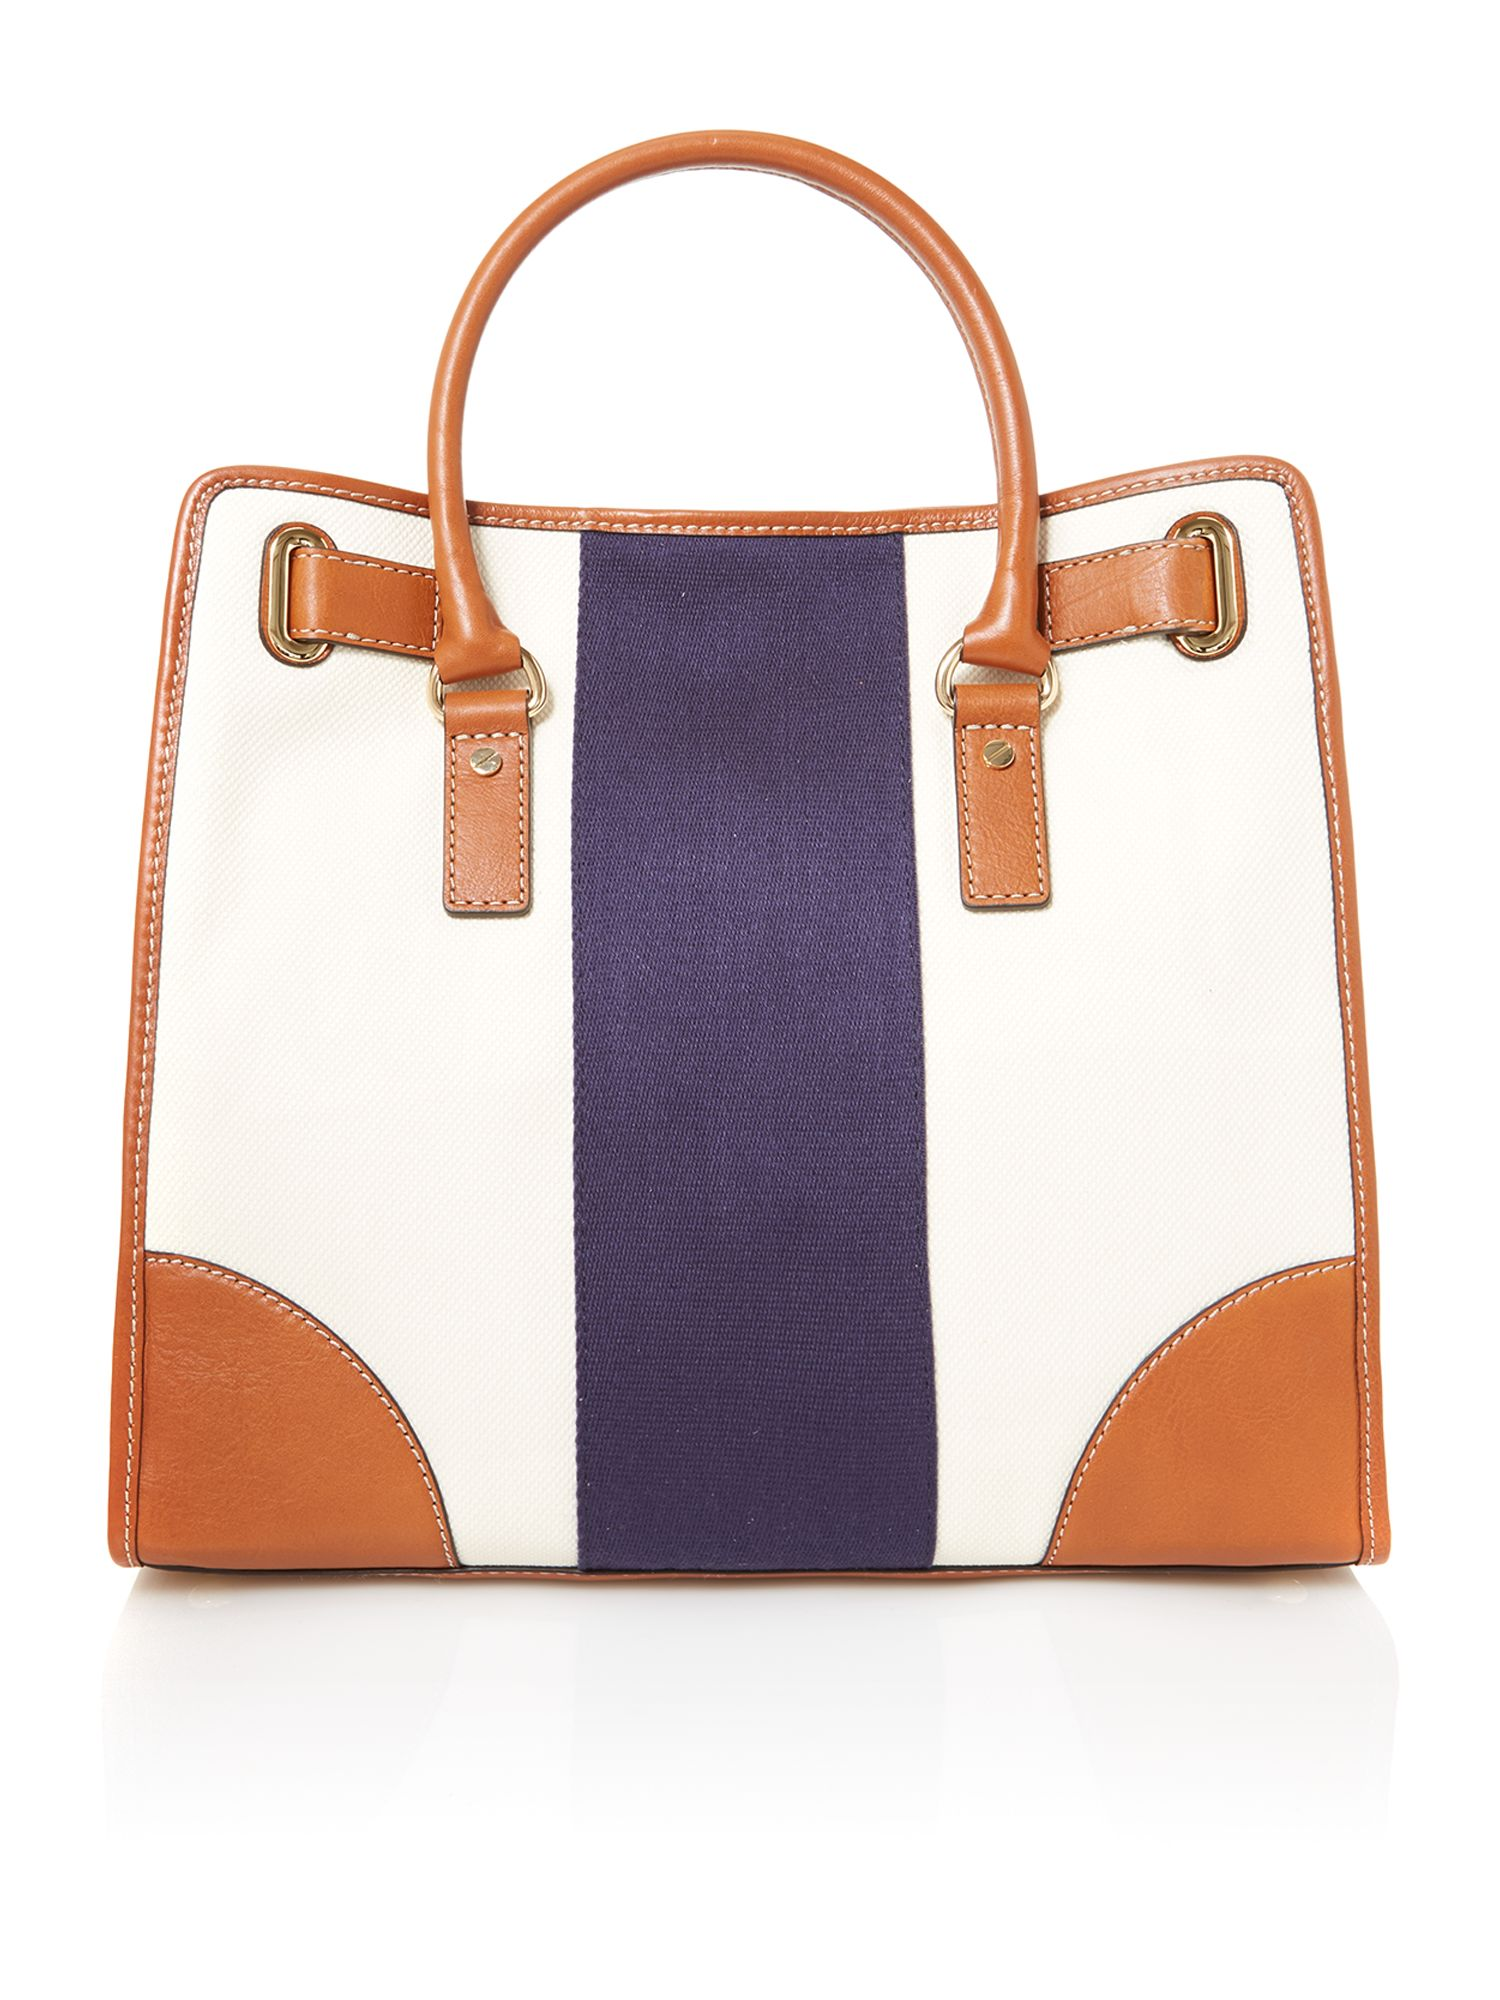 Hamilton multi coloured tote bag